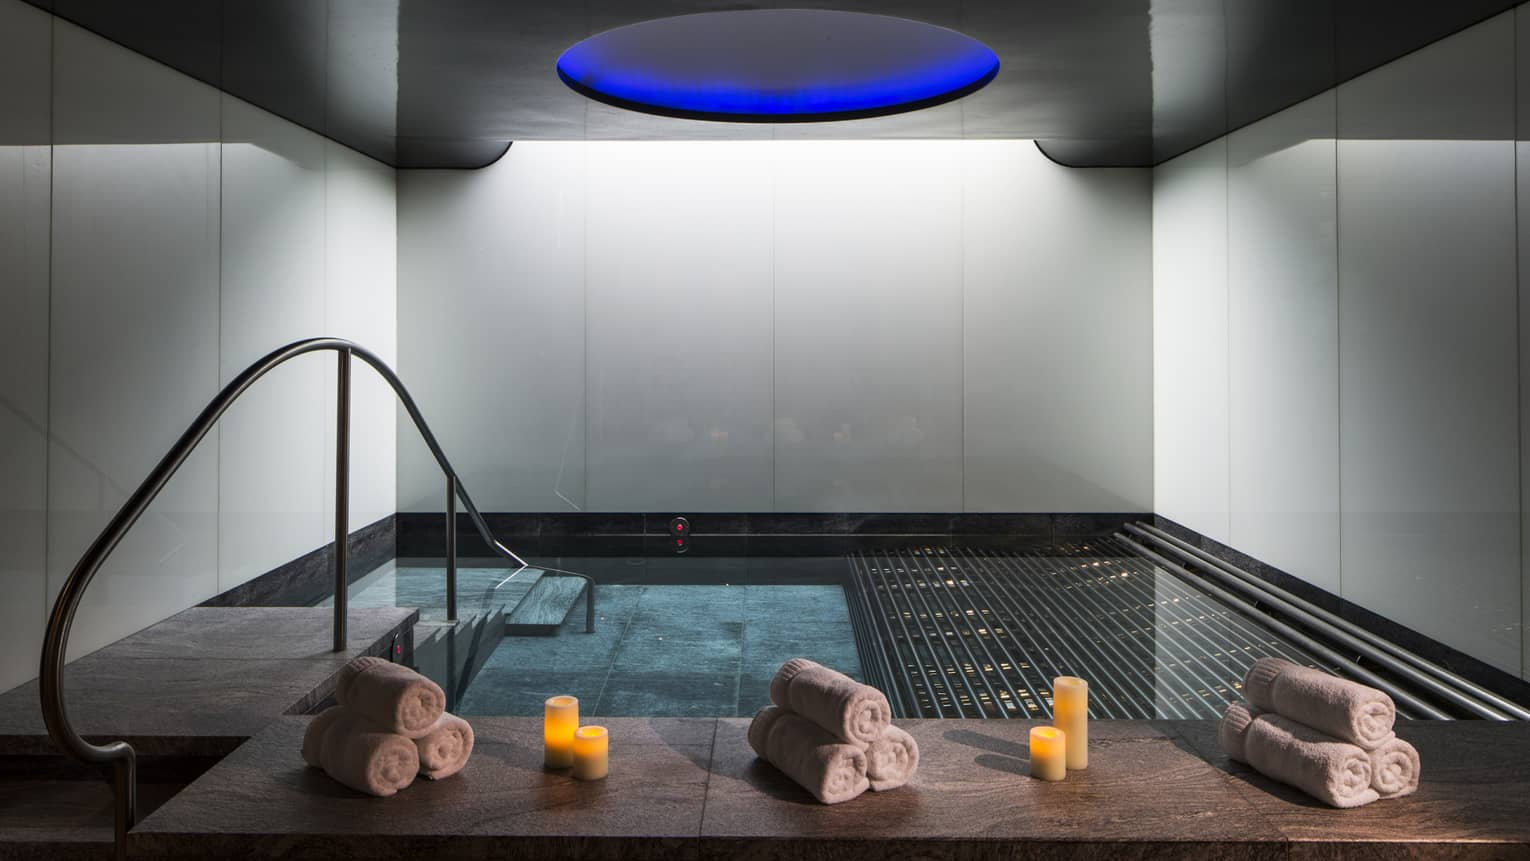 Rolled white towels, candles on spa vitality pool ledge under blue dome ceiling